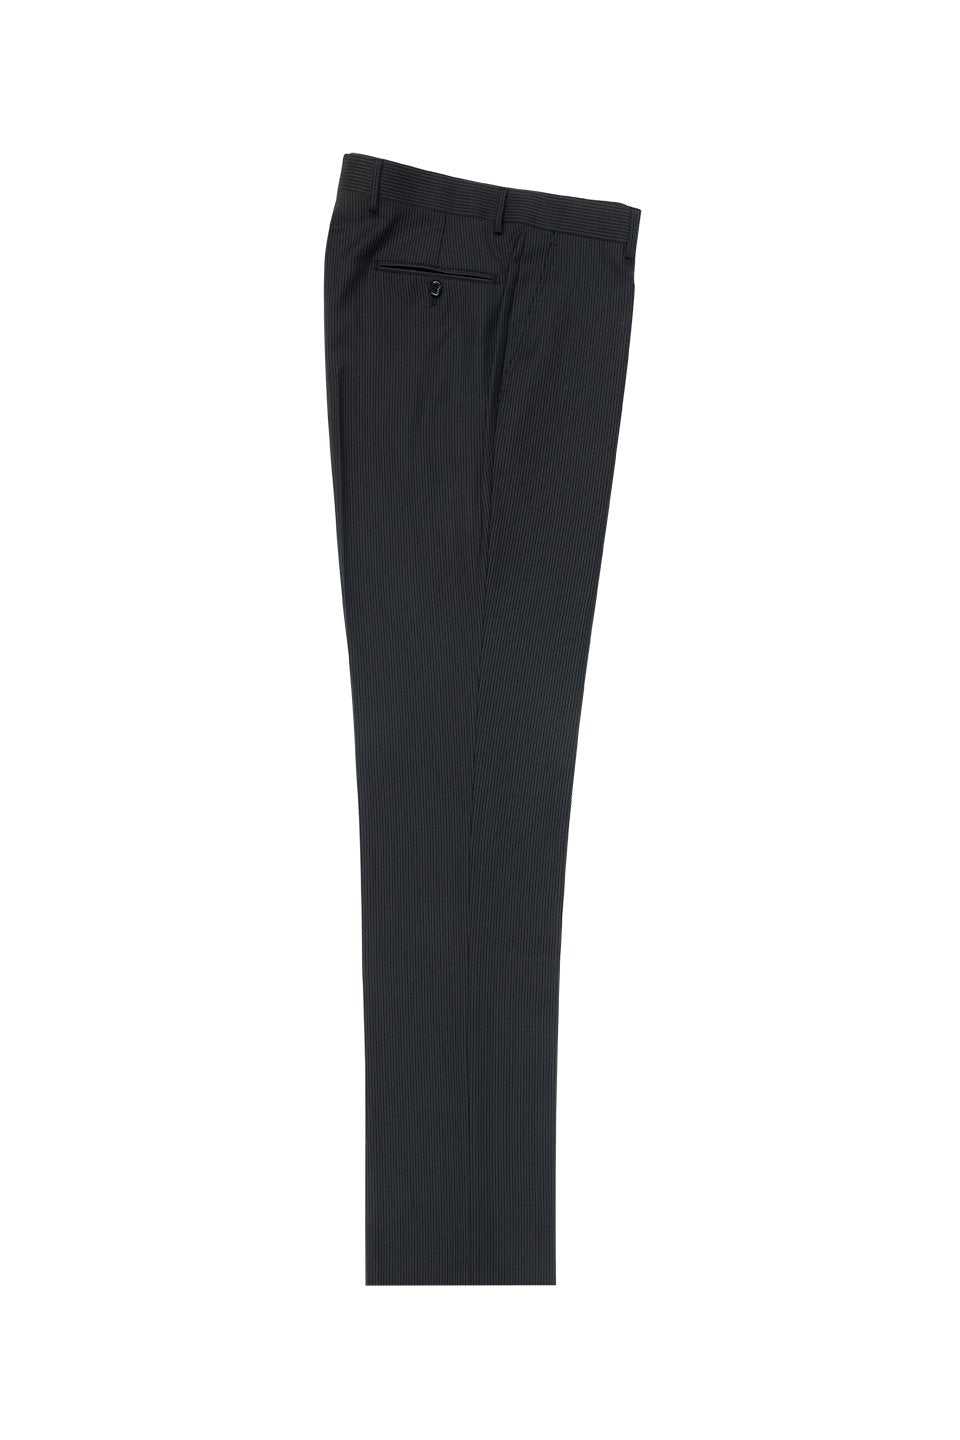 Tiglio Black Mini-Stripe Flat Front Dress Pants